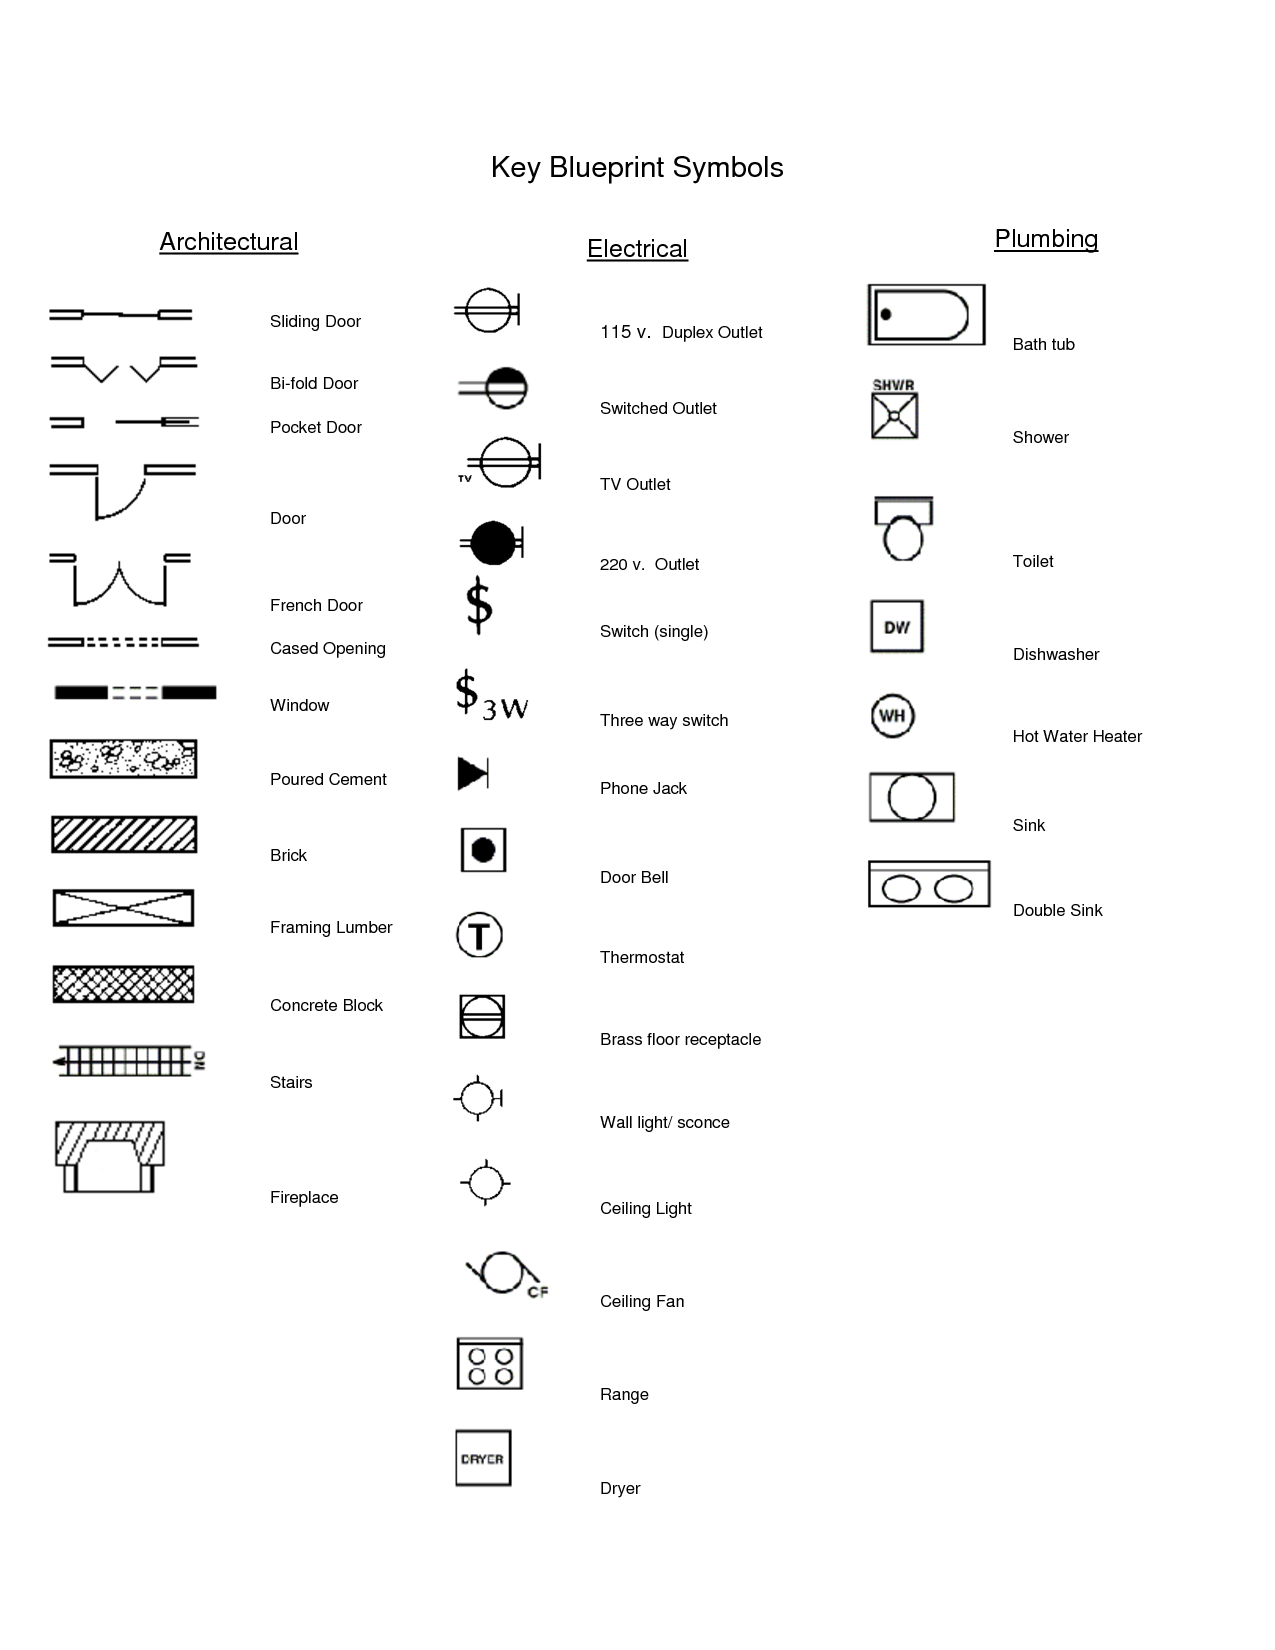 quad receptacle wiring diagram generator remote start electrical outlet symbols blueprints #brick pinned by www.modlar.com   brick in 2019 ...